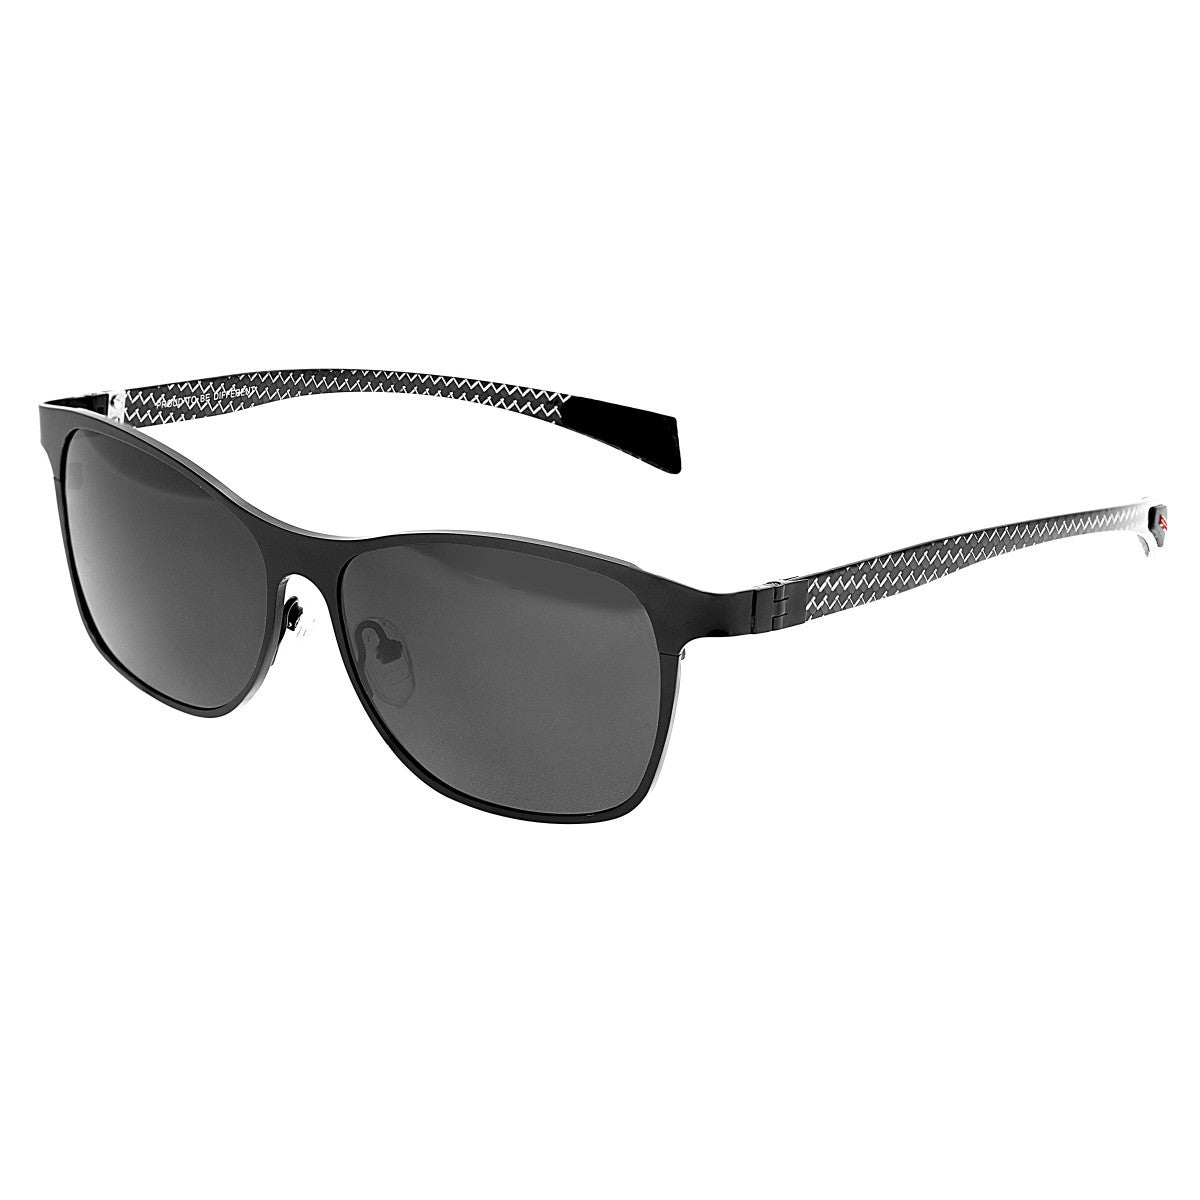 Breed Templar Titanium Polarized Sunglasses - GENT.ONE